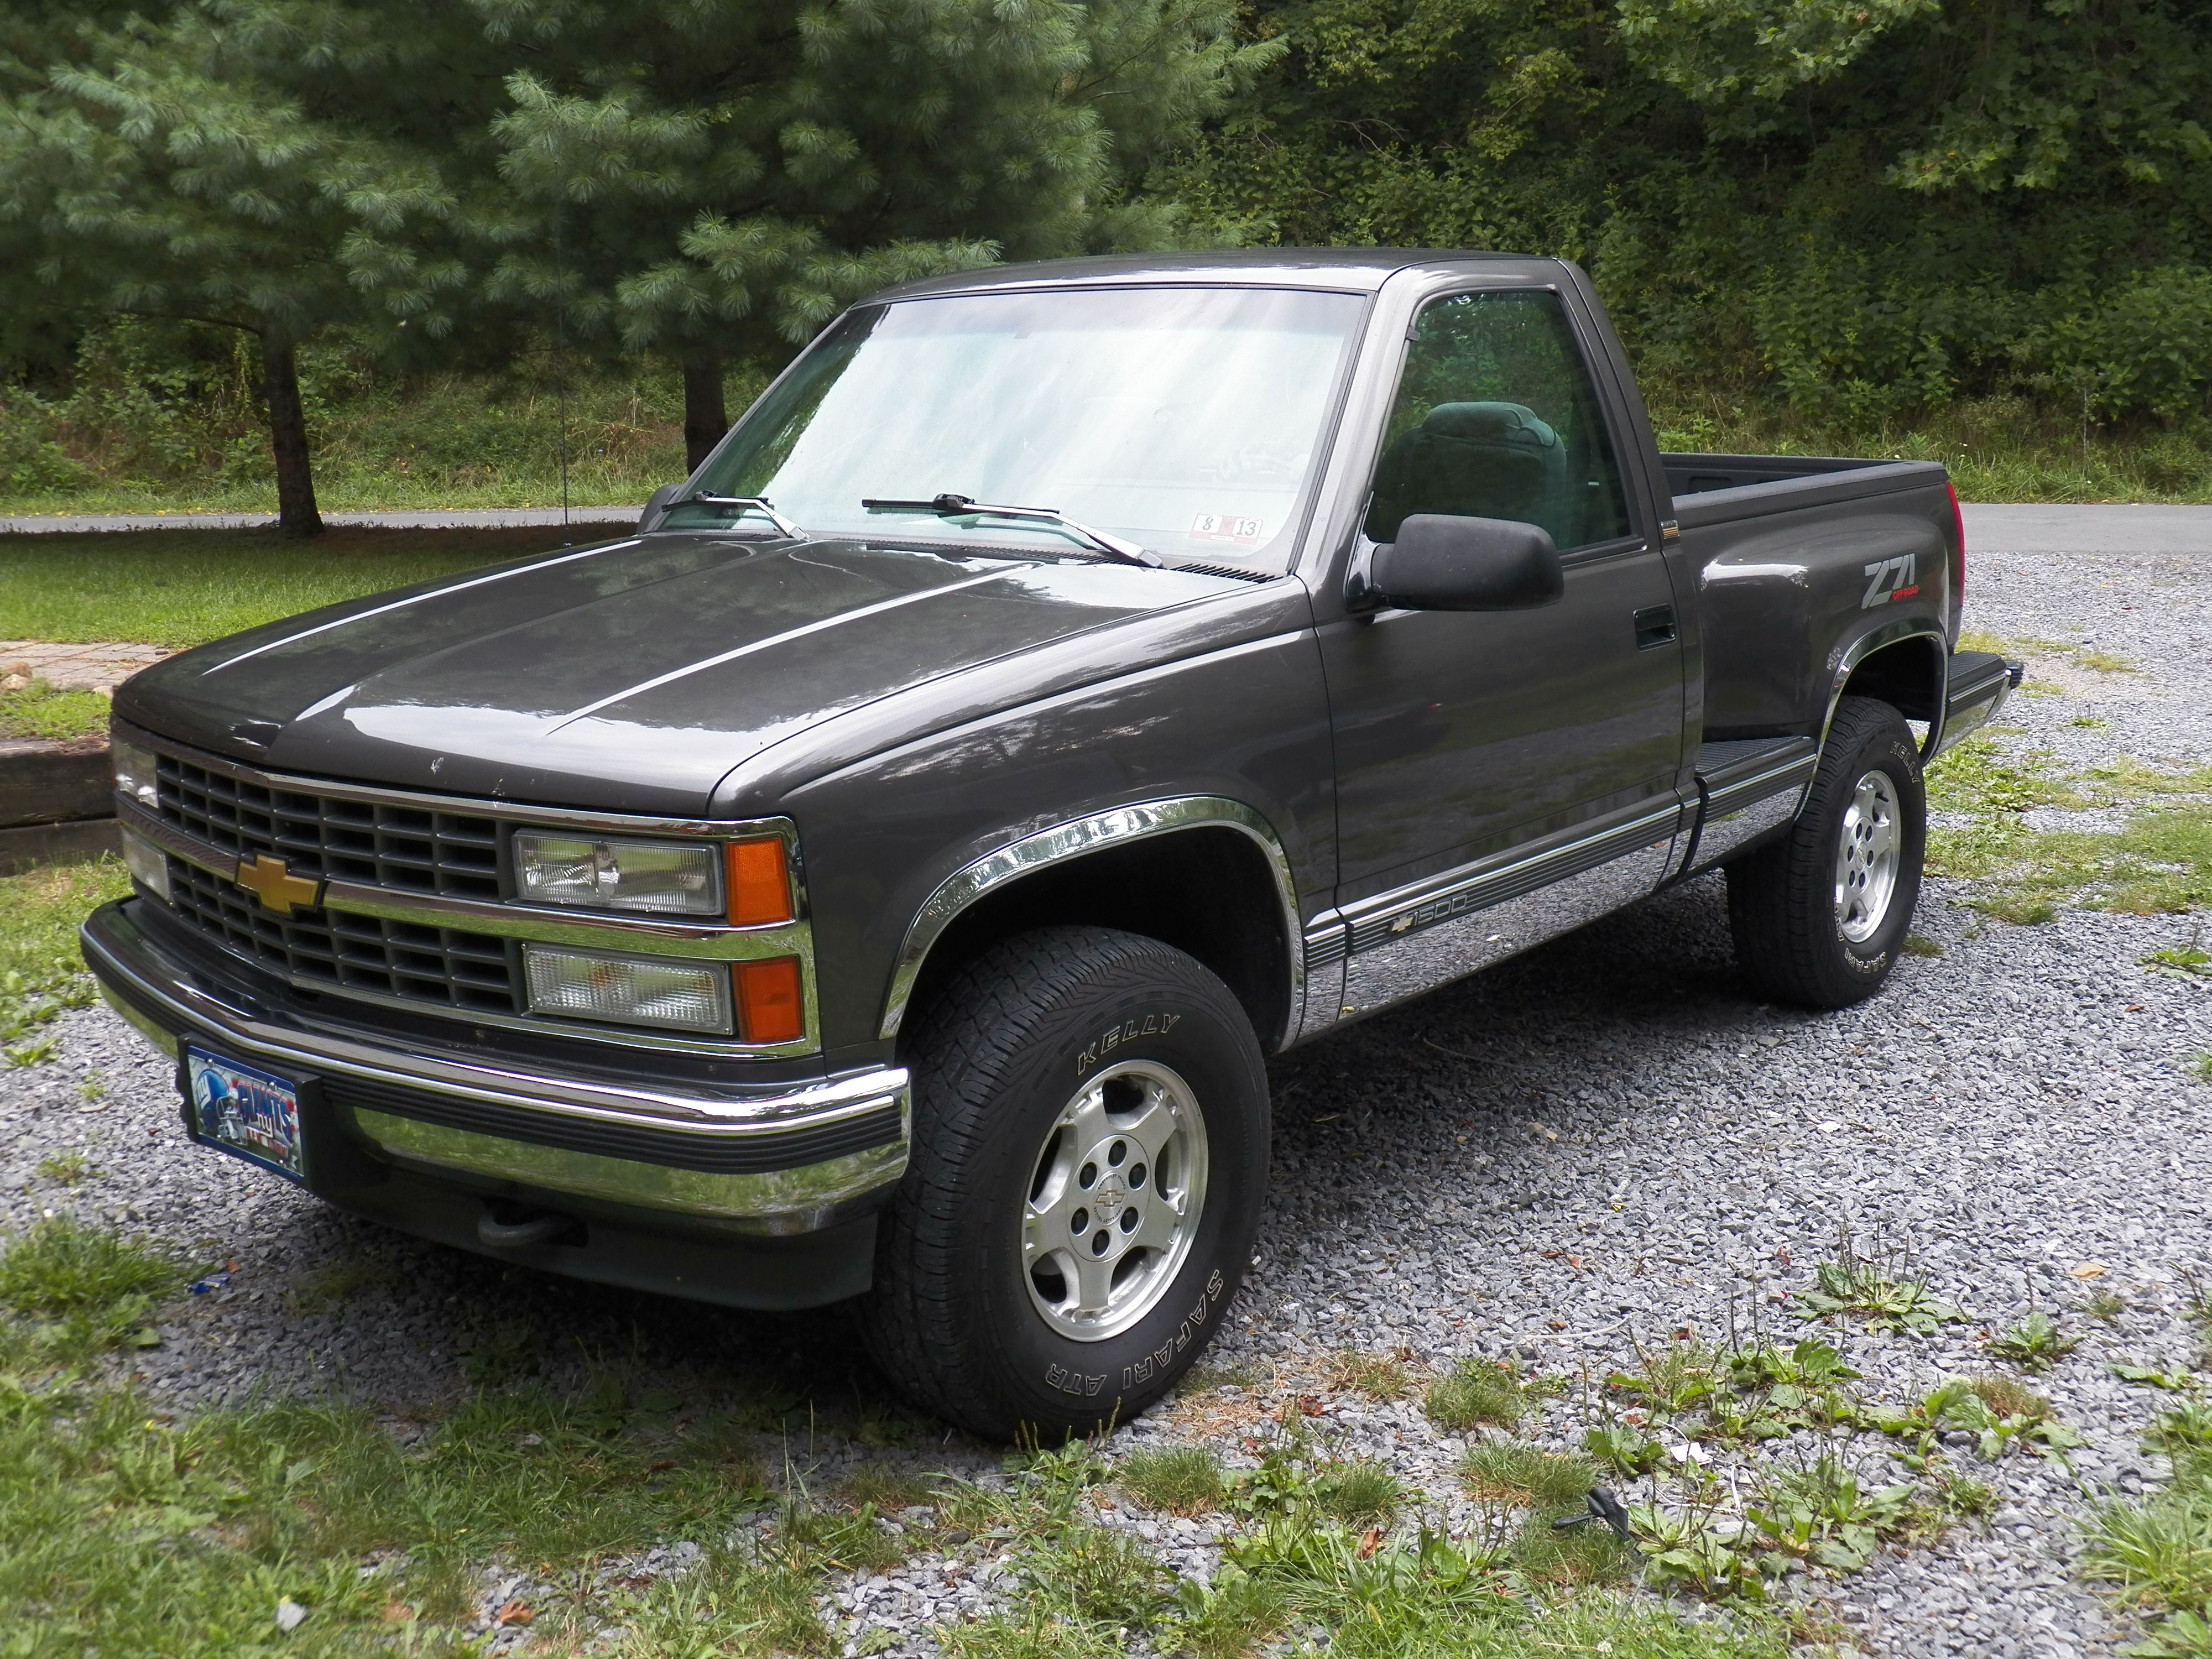 medium resolution of my pretty baby 1994 chevy stepside truck 350 z71 gunmetal grey i ve wanted one of these since i was a teen bought this one about 3 weeks ago 3